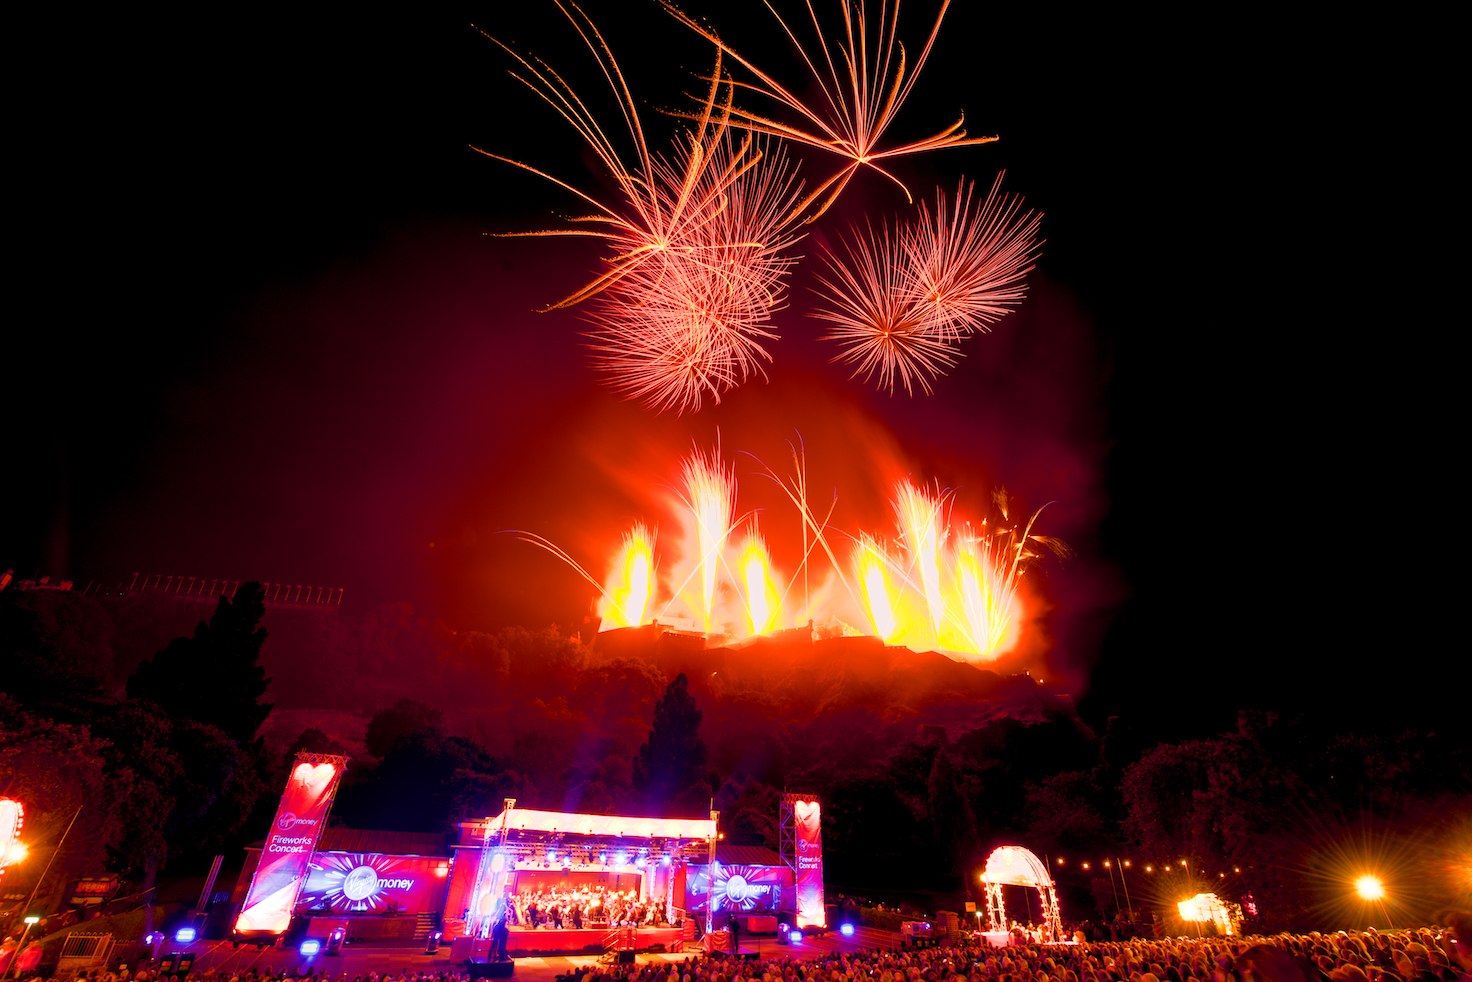 virgin-money-fireworks-concert-edinburgh-castleedinburgh-international-festival-edinburgh-castle-29th-august-2016-3